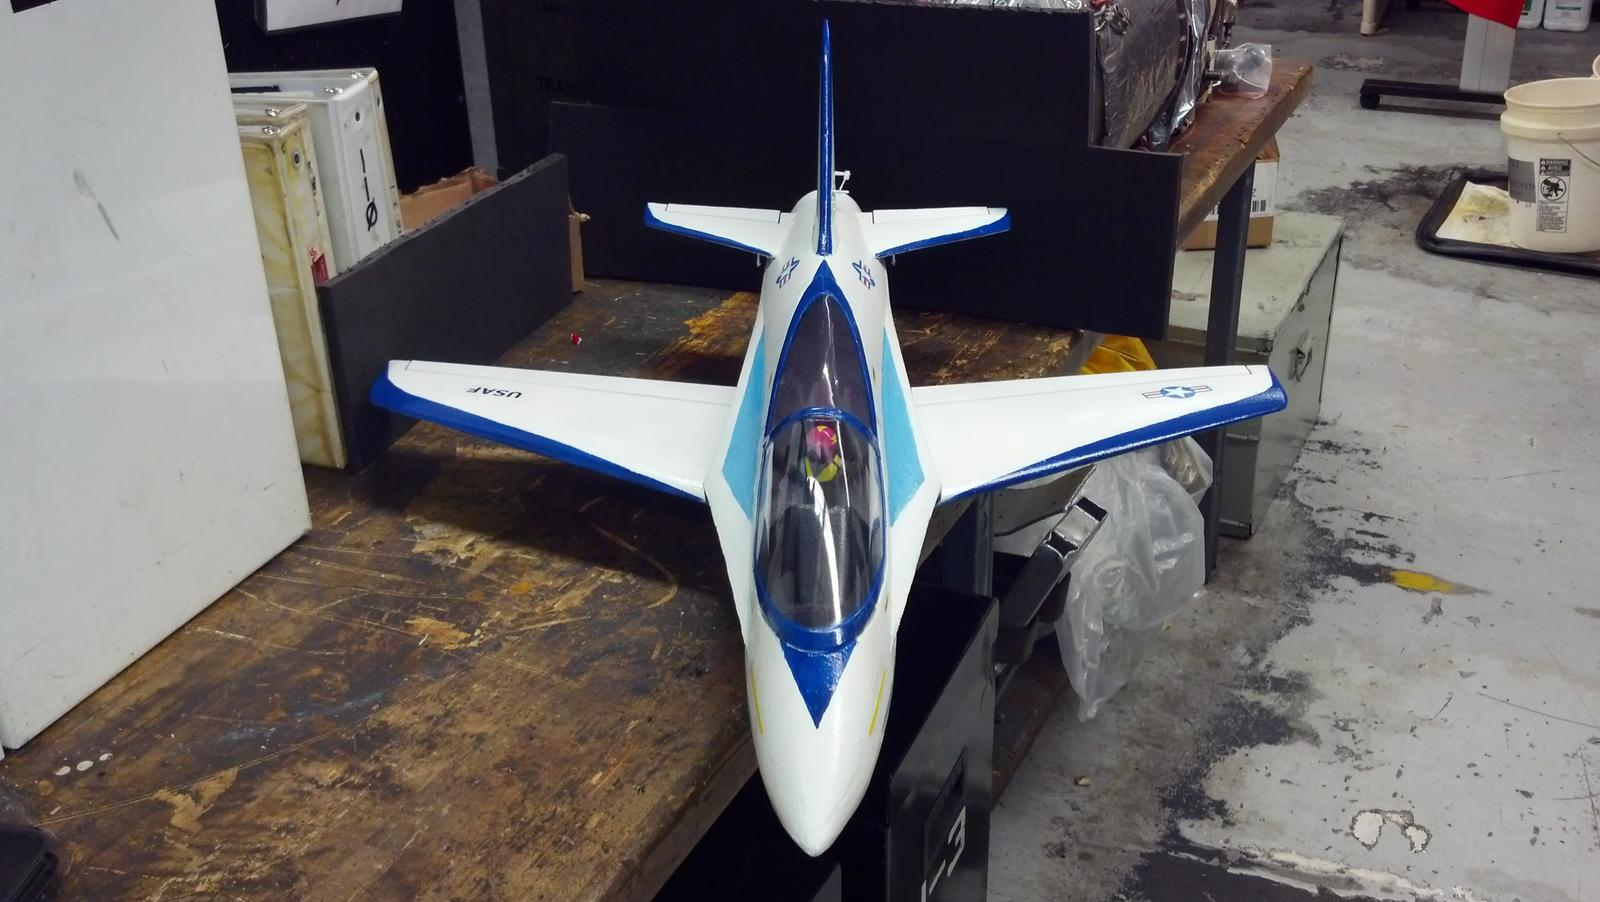 Name: 2013-01-13_23-25-47_52.jpg